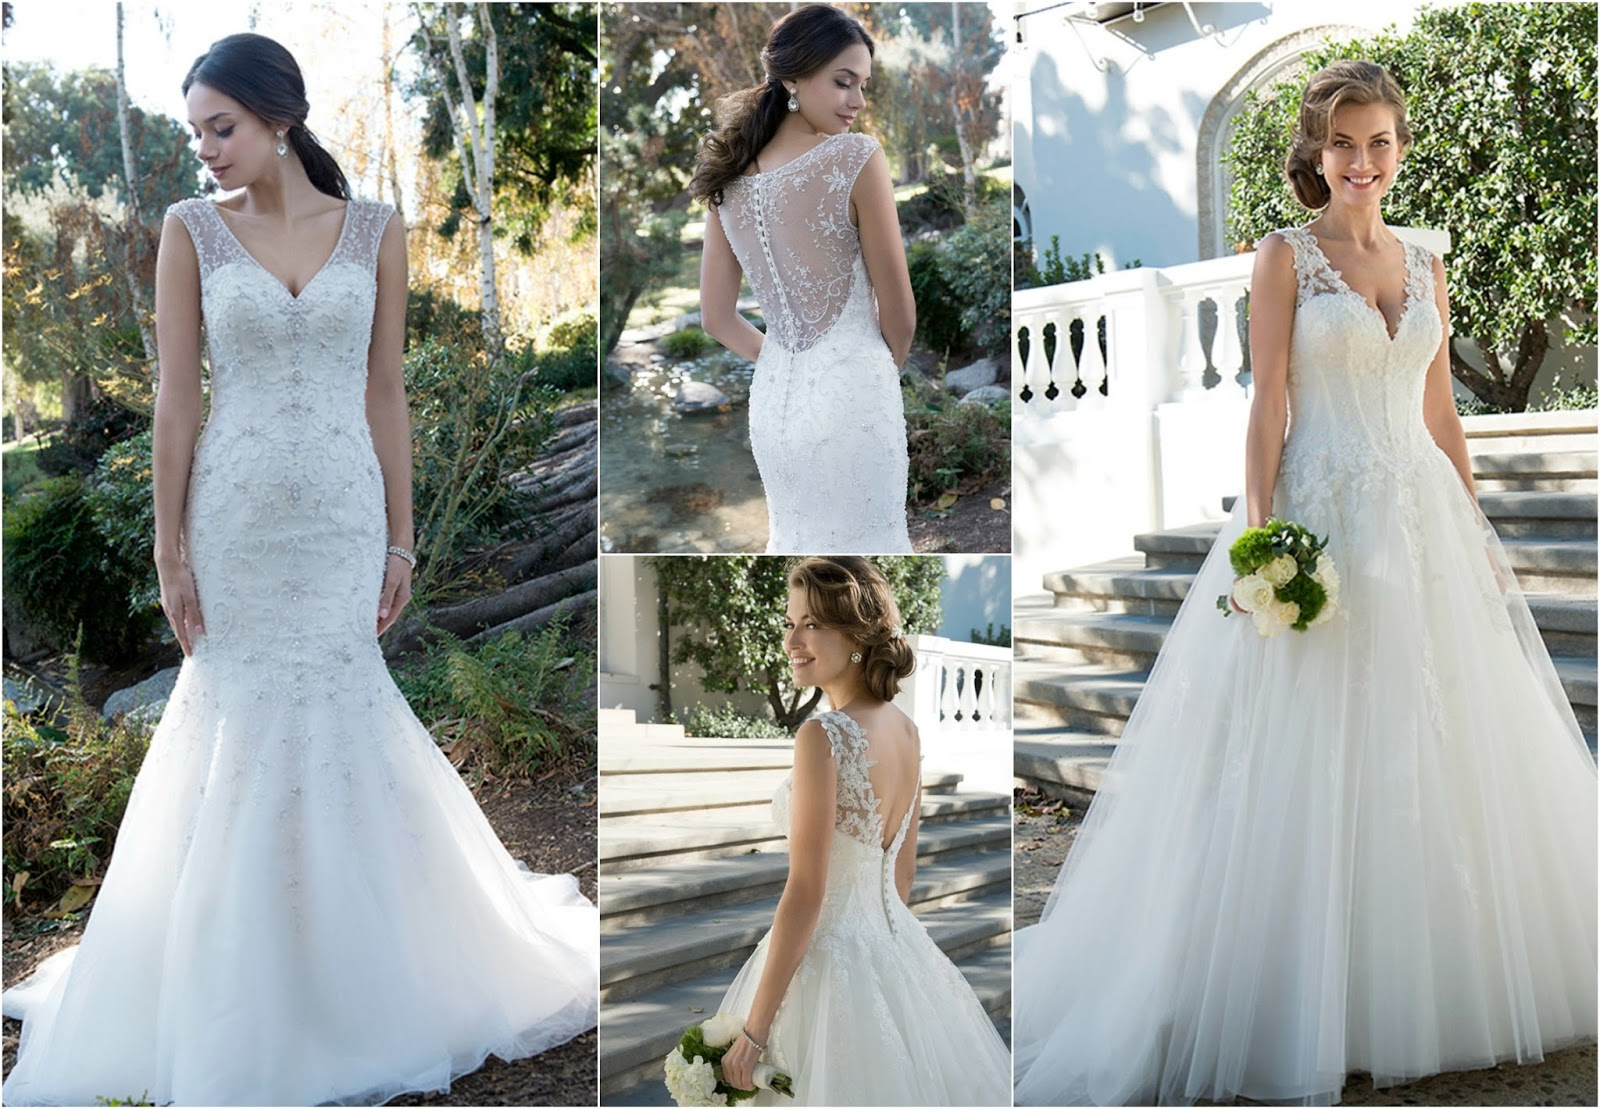 Venus Bridal Timeless Beauty